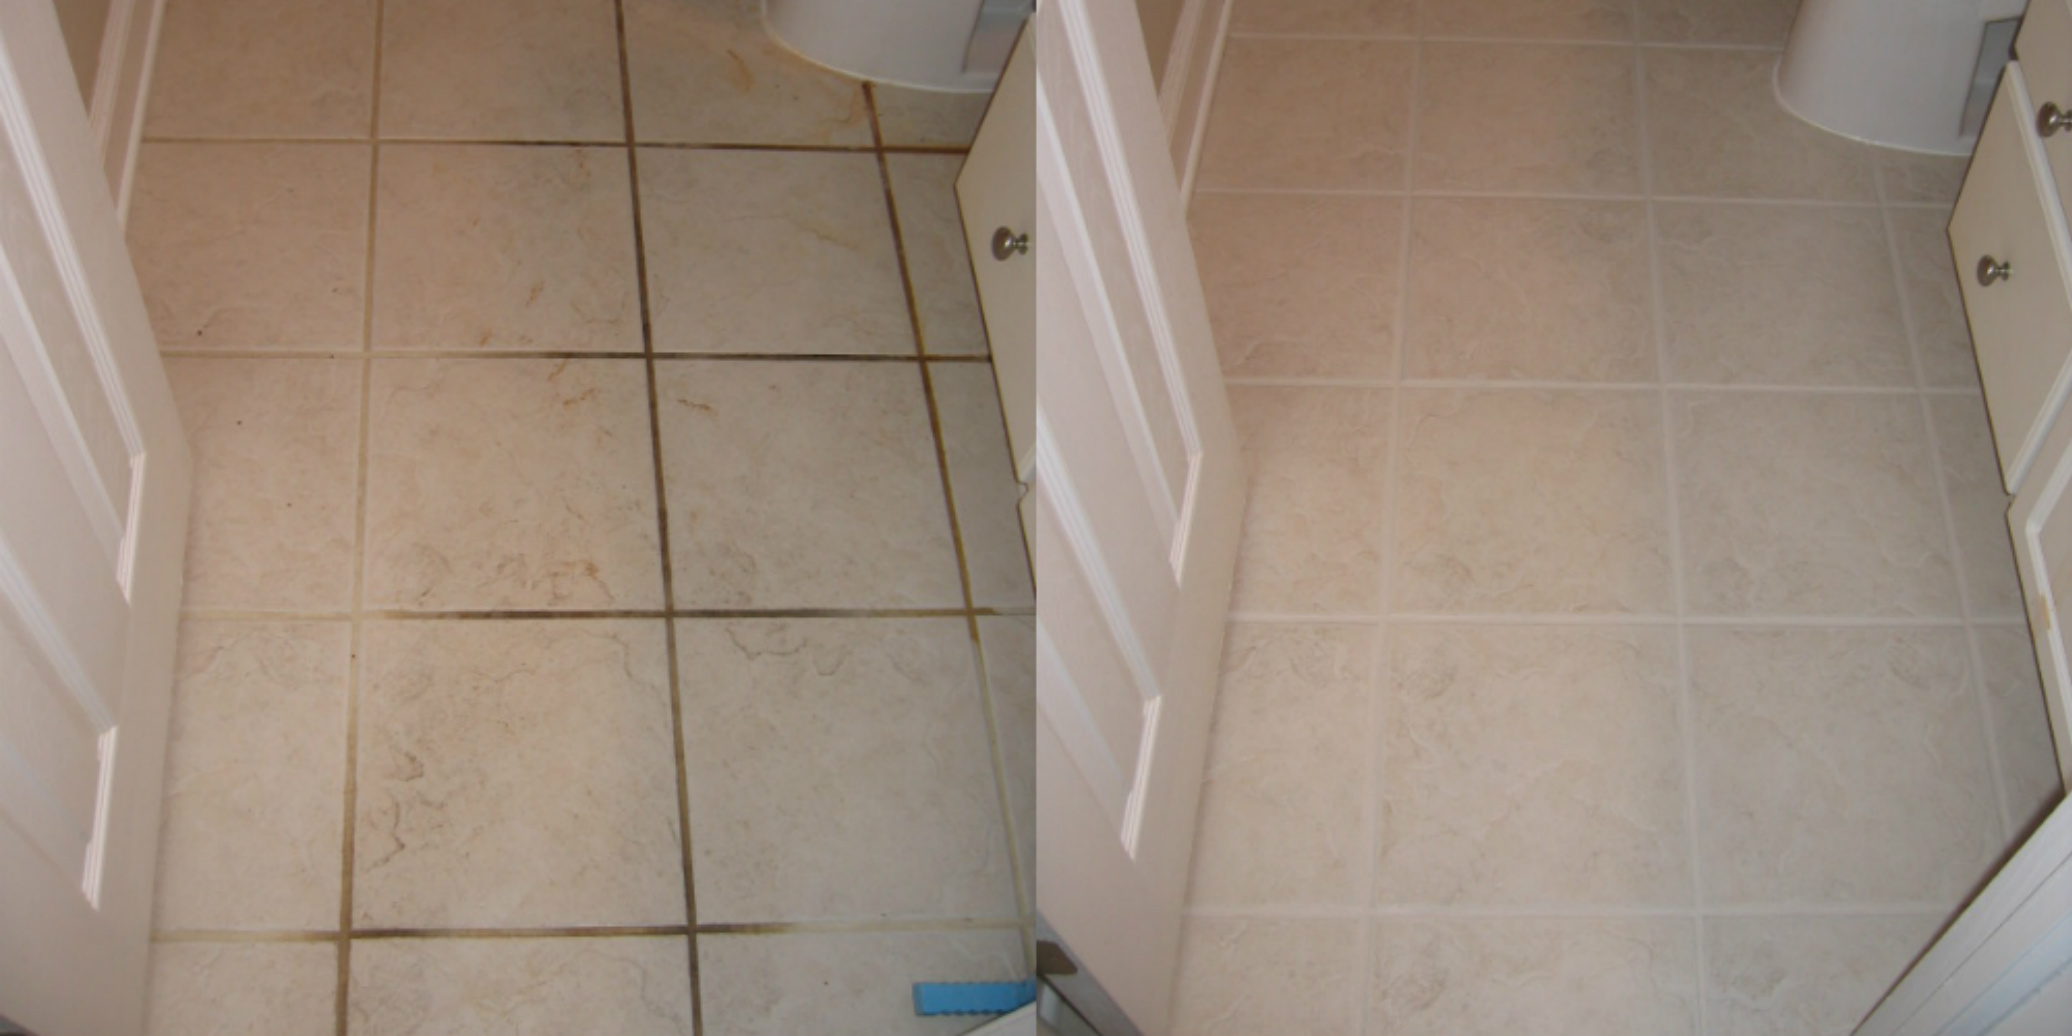 Tile and Grout Cleaning Services Crimea